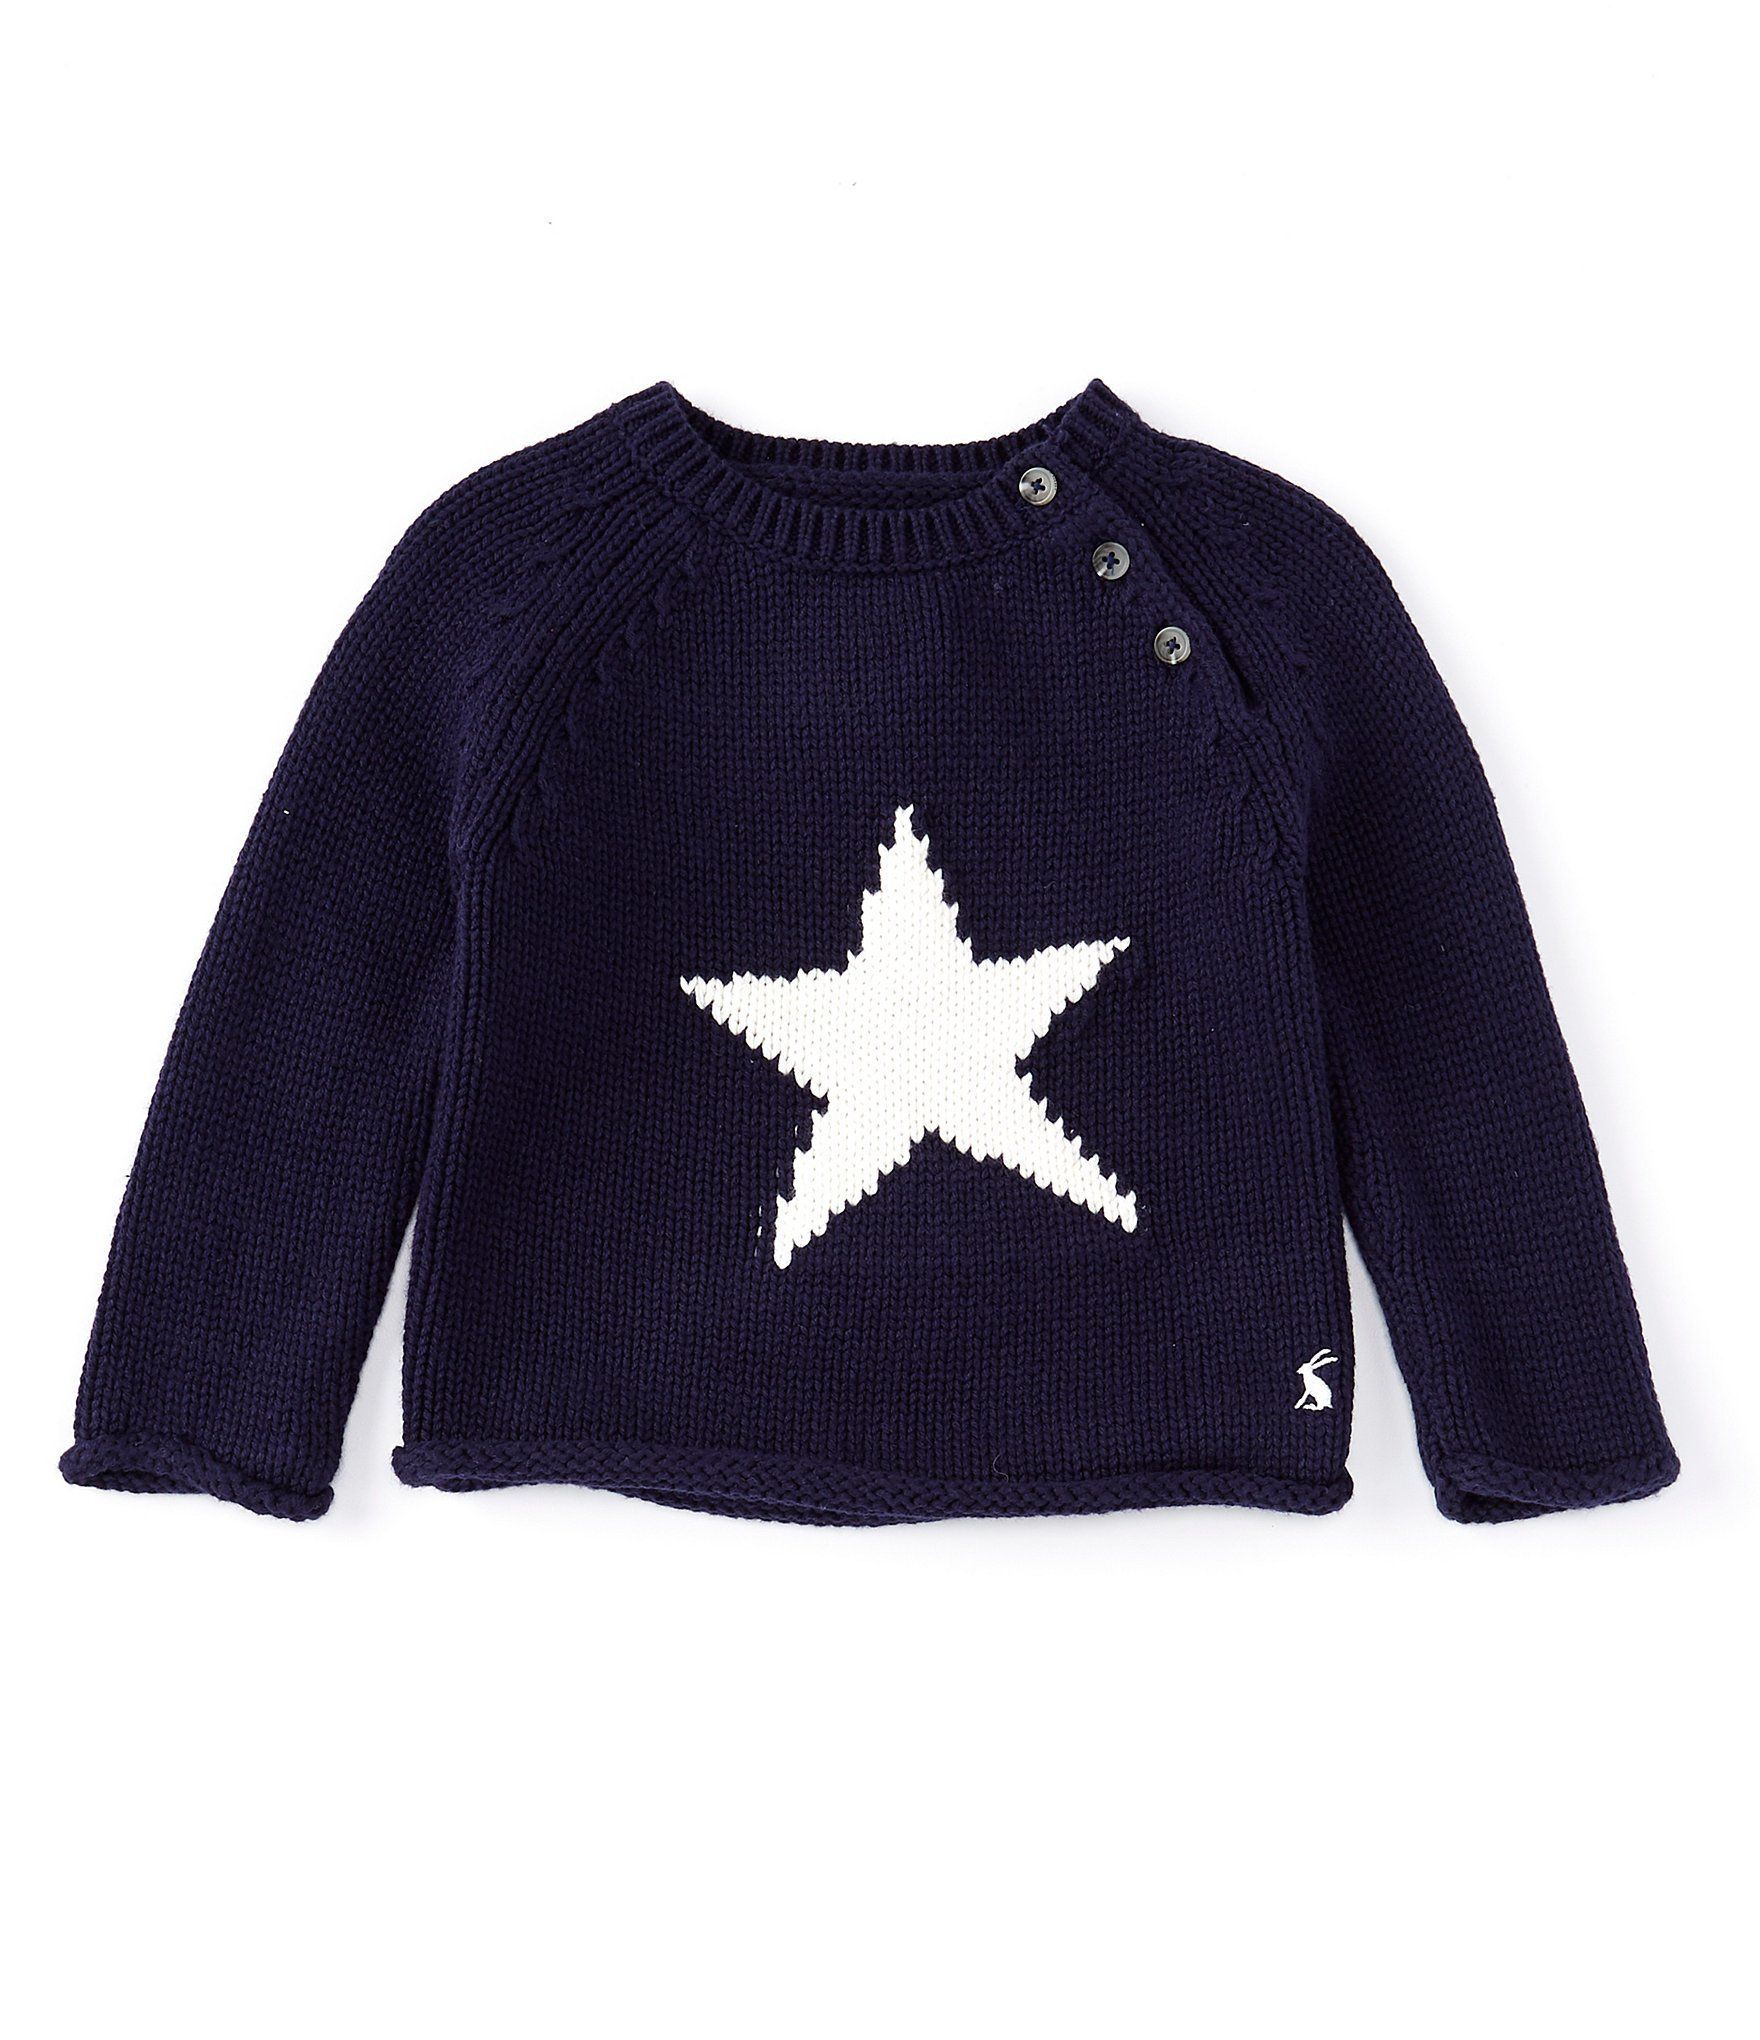 Photo of Joules Baby Boys Newborn-12 Months Long-Sleeve Beau Sweater | Dillard's